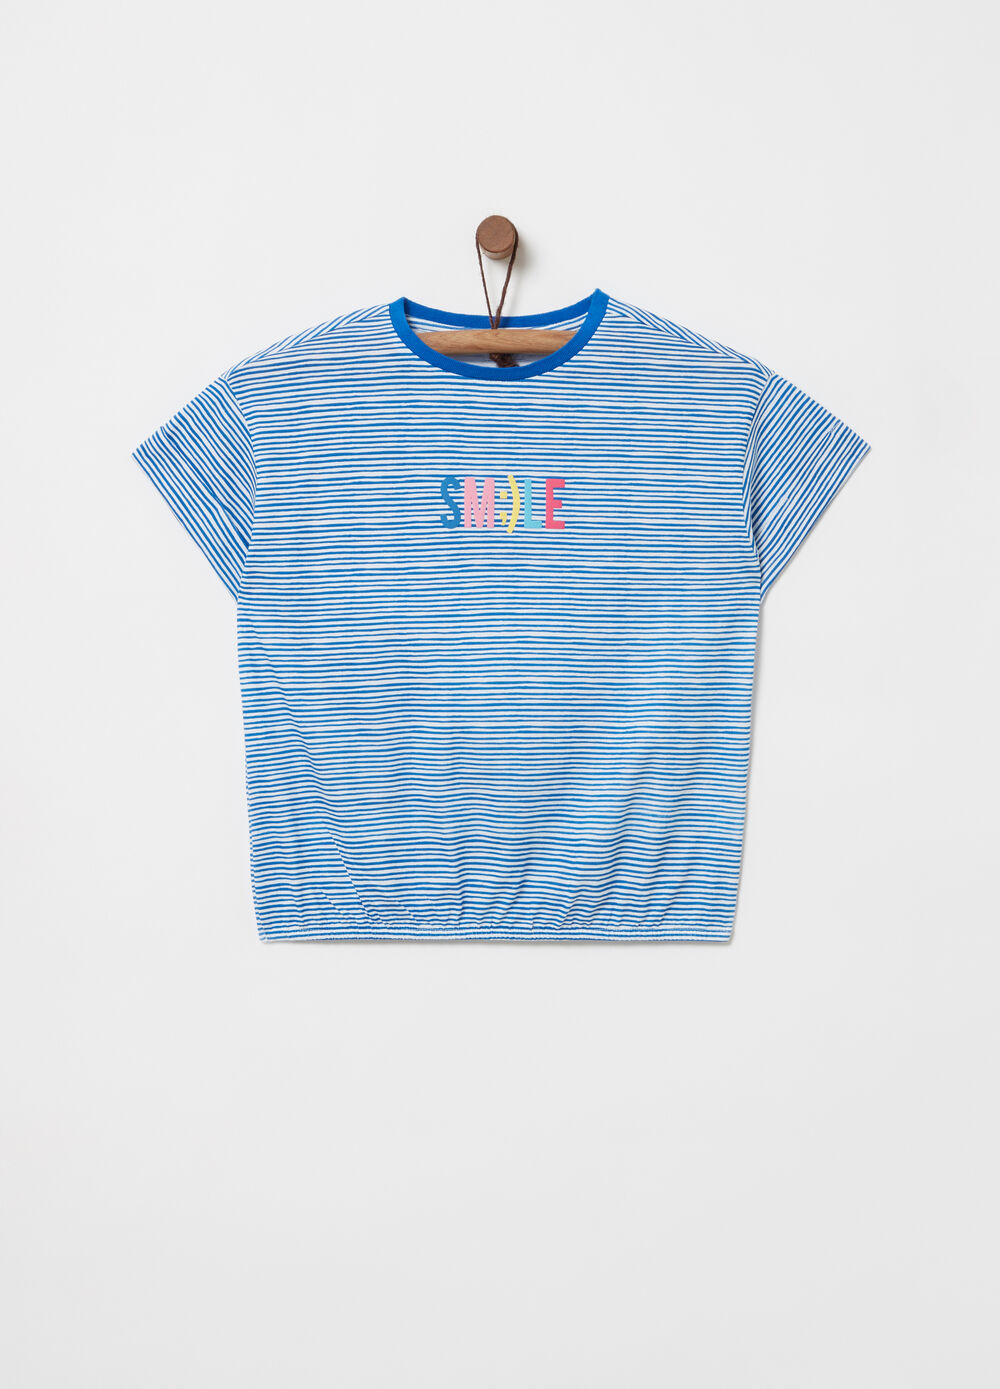 T-shirt with cap sleeves and striped pattern